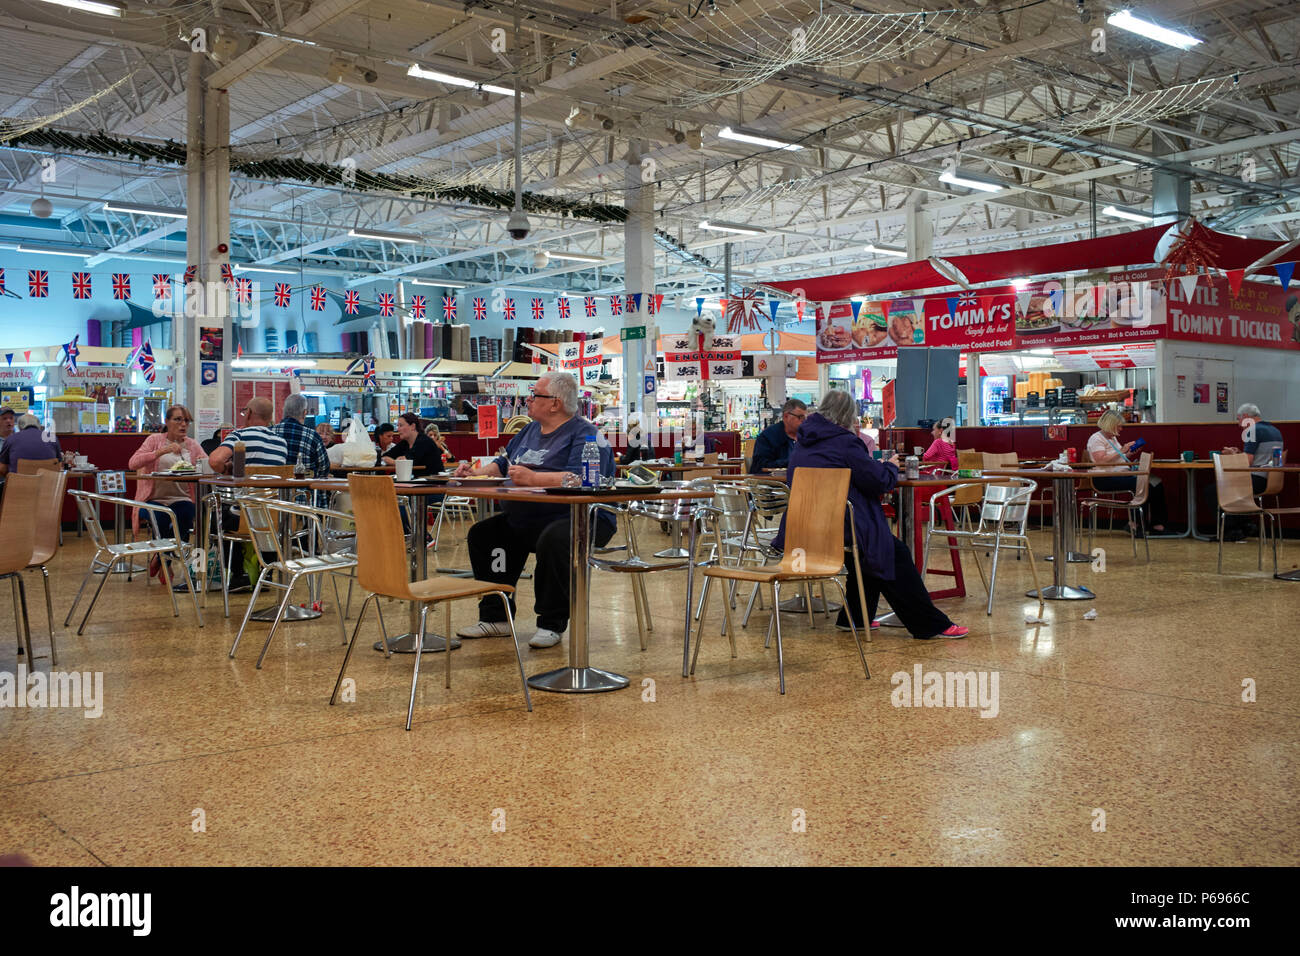 Cafe and eating area in the central covered market of Ellesmere Port - Stock Image